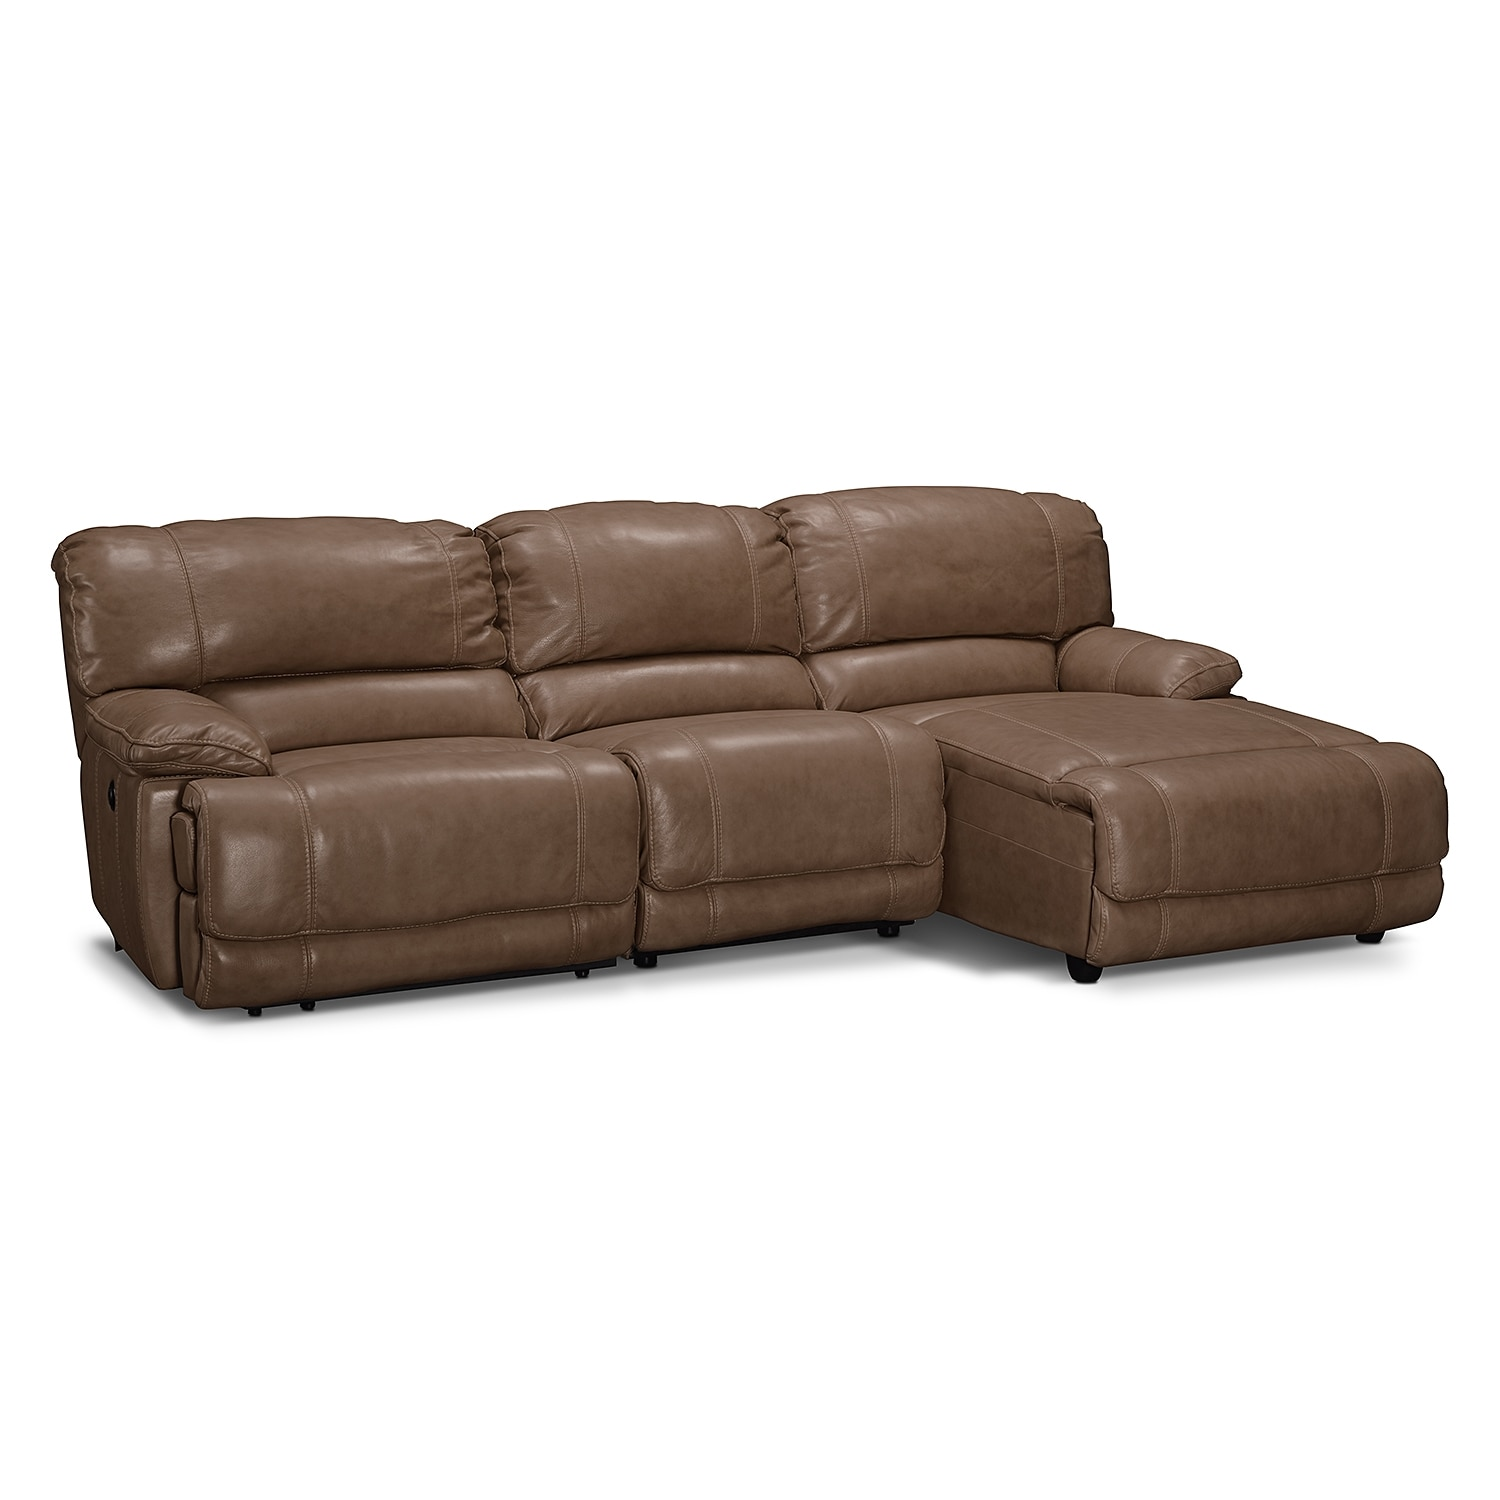 St malo 3 piece power reclining sectional with right for Alexander sectional sofa chaise